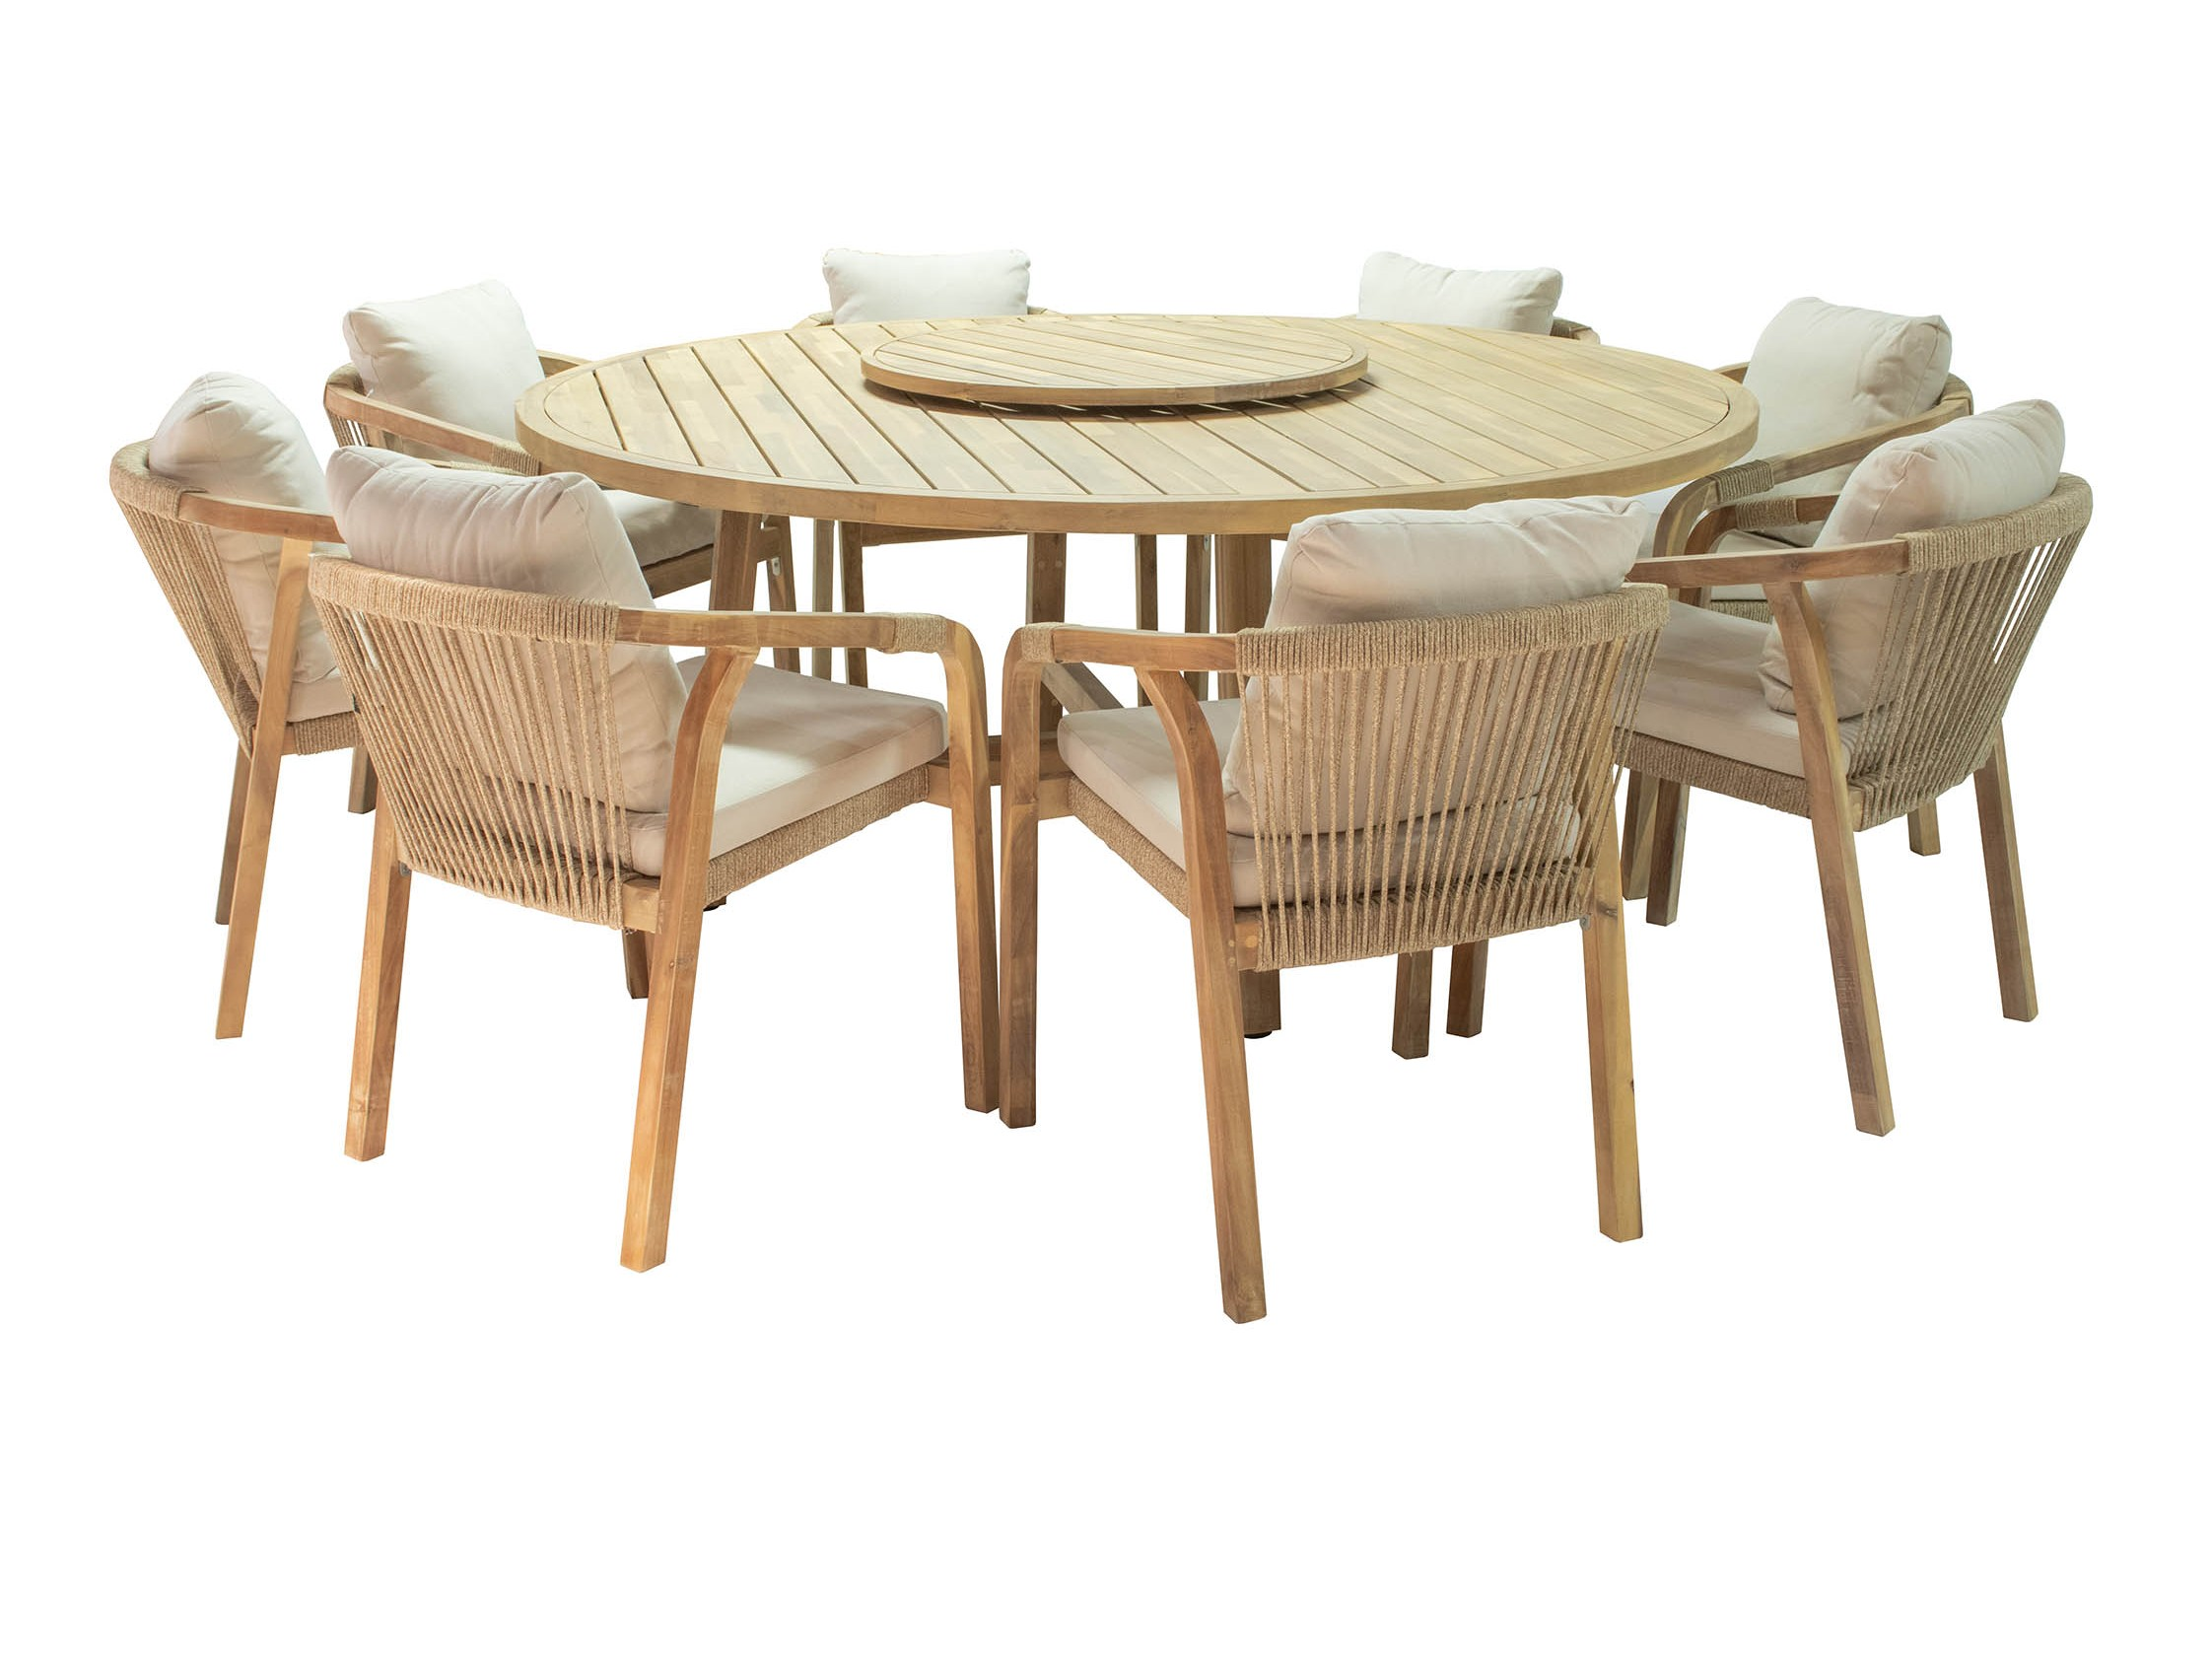 Remo 8 seater Dining set